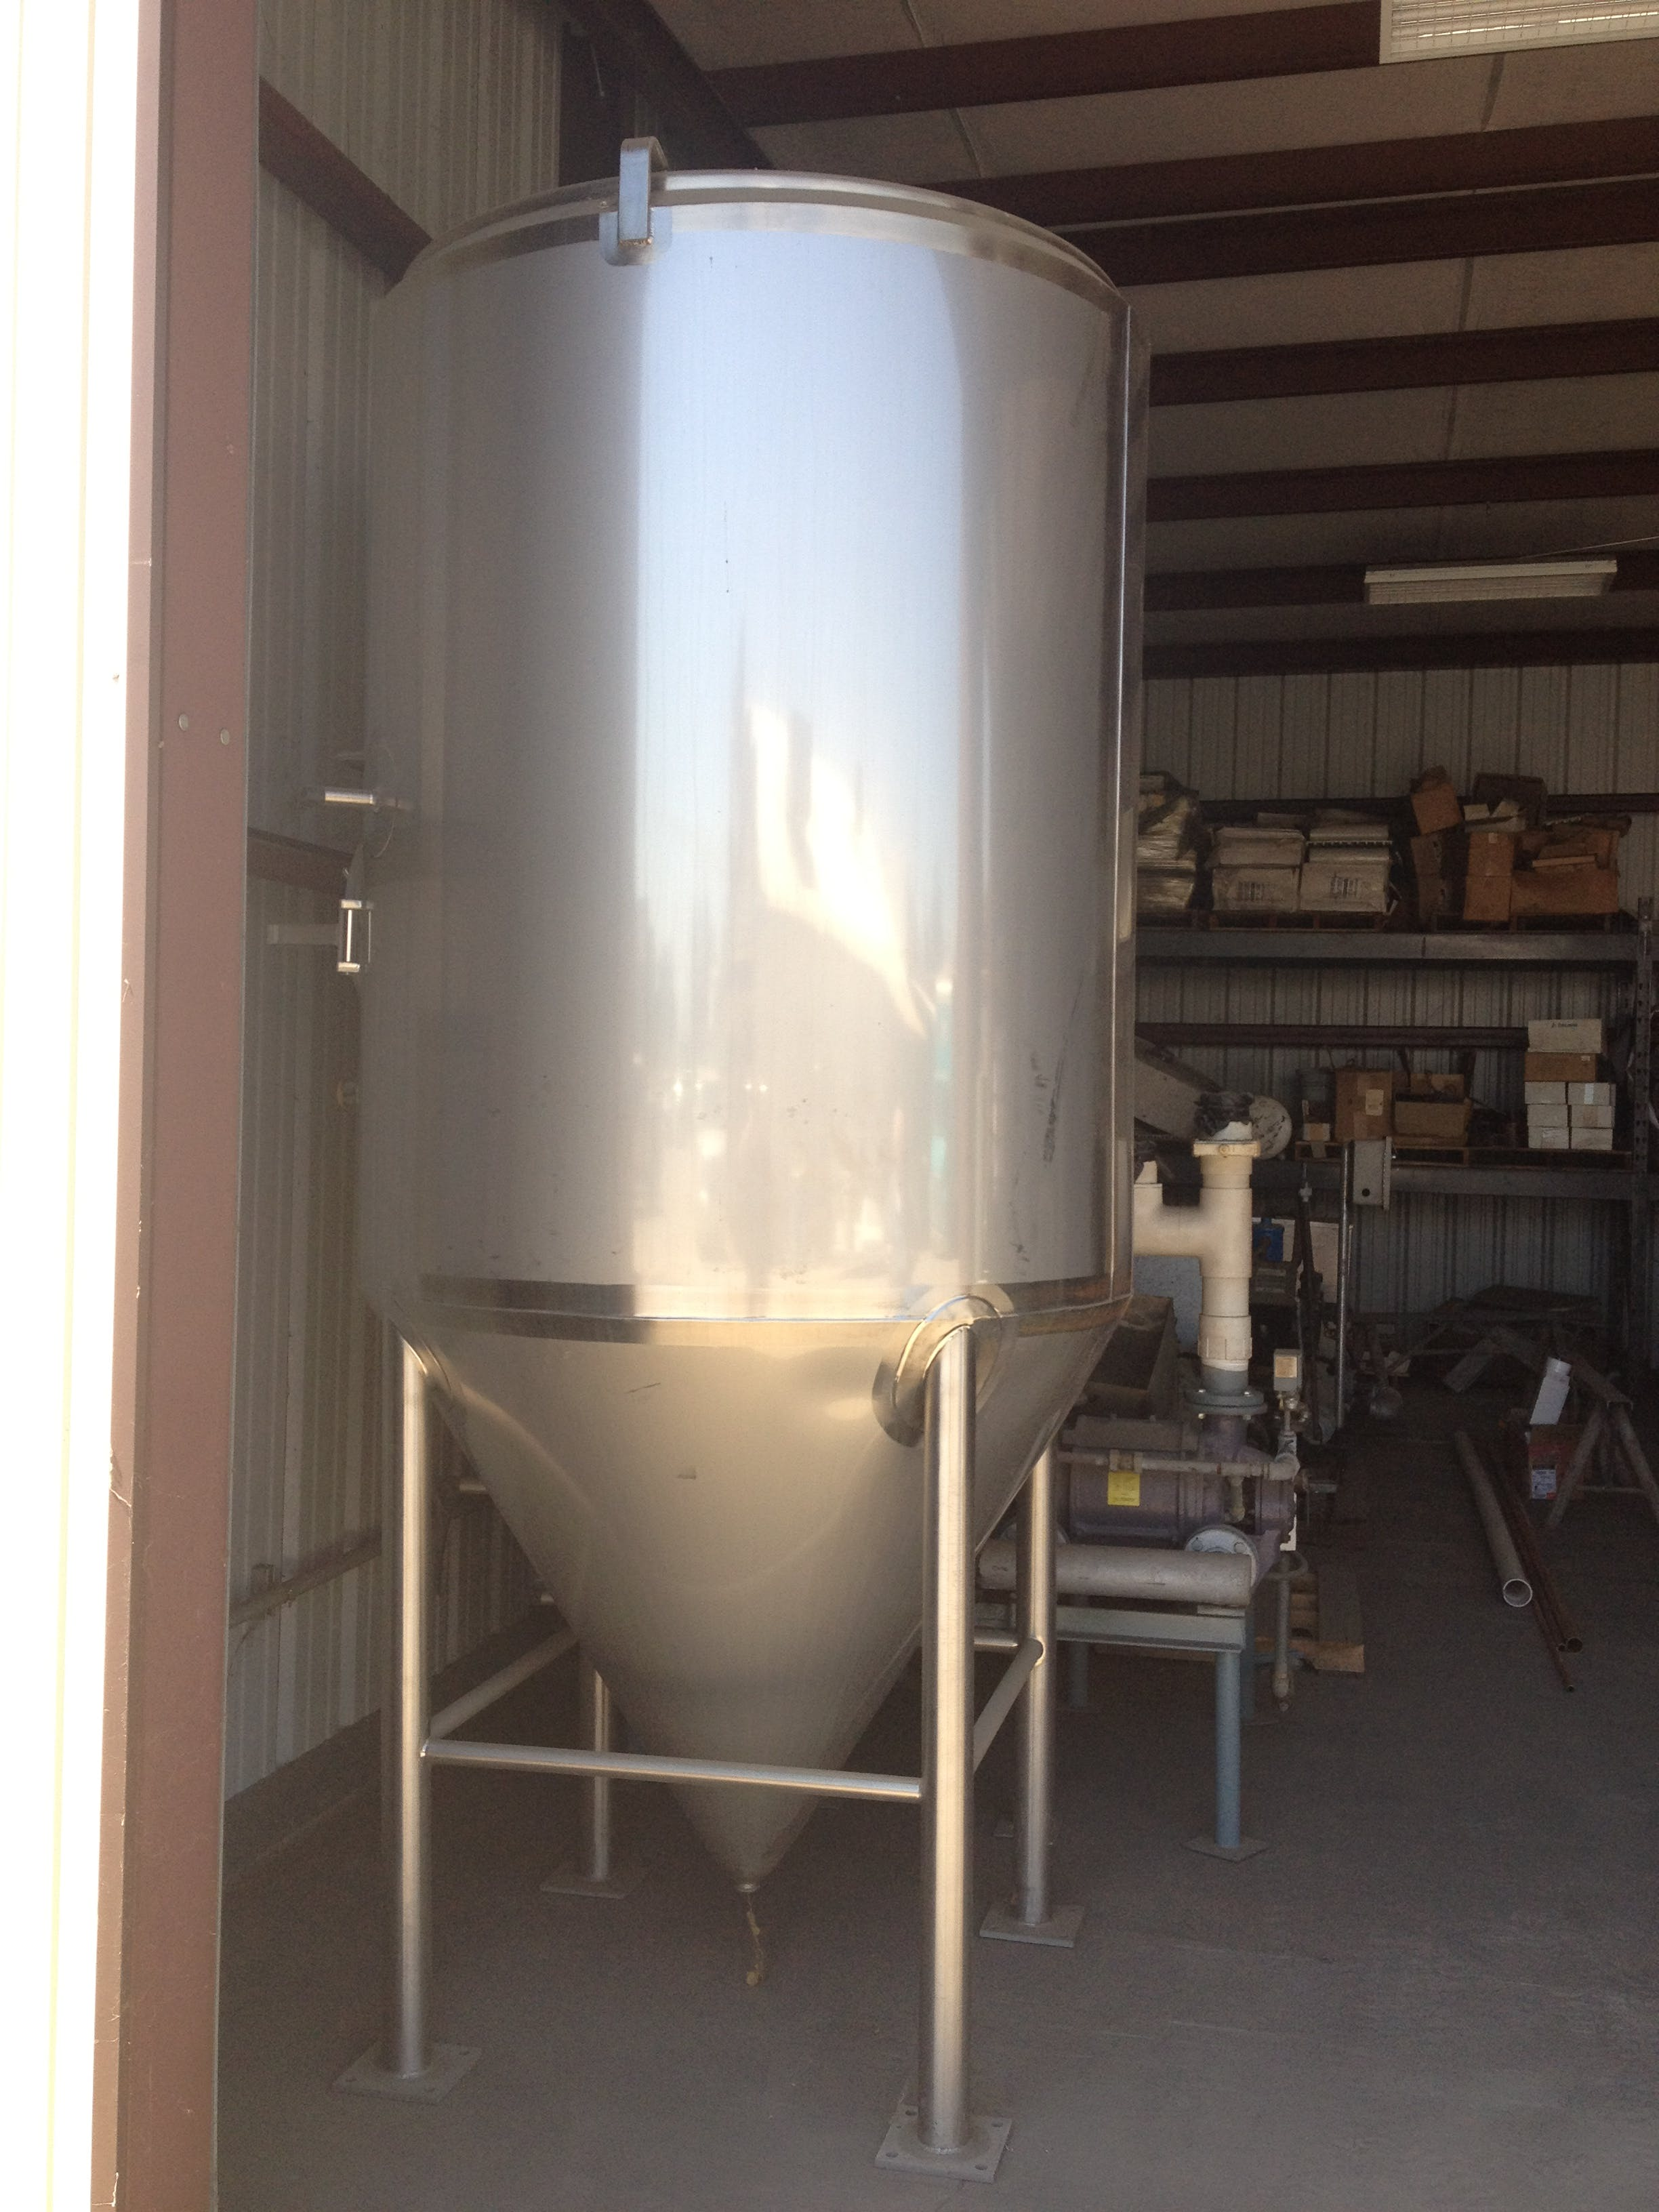 Stainless Steel Olive Oil tank  Olive oil tank sold by Hood-EIC, LLC Tank Division